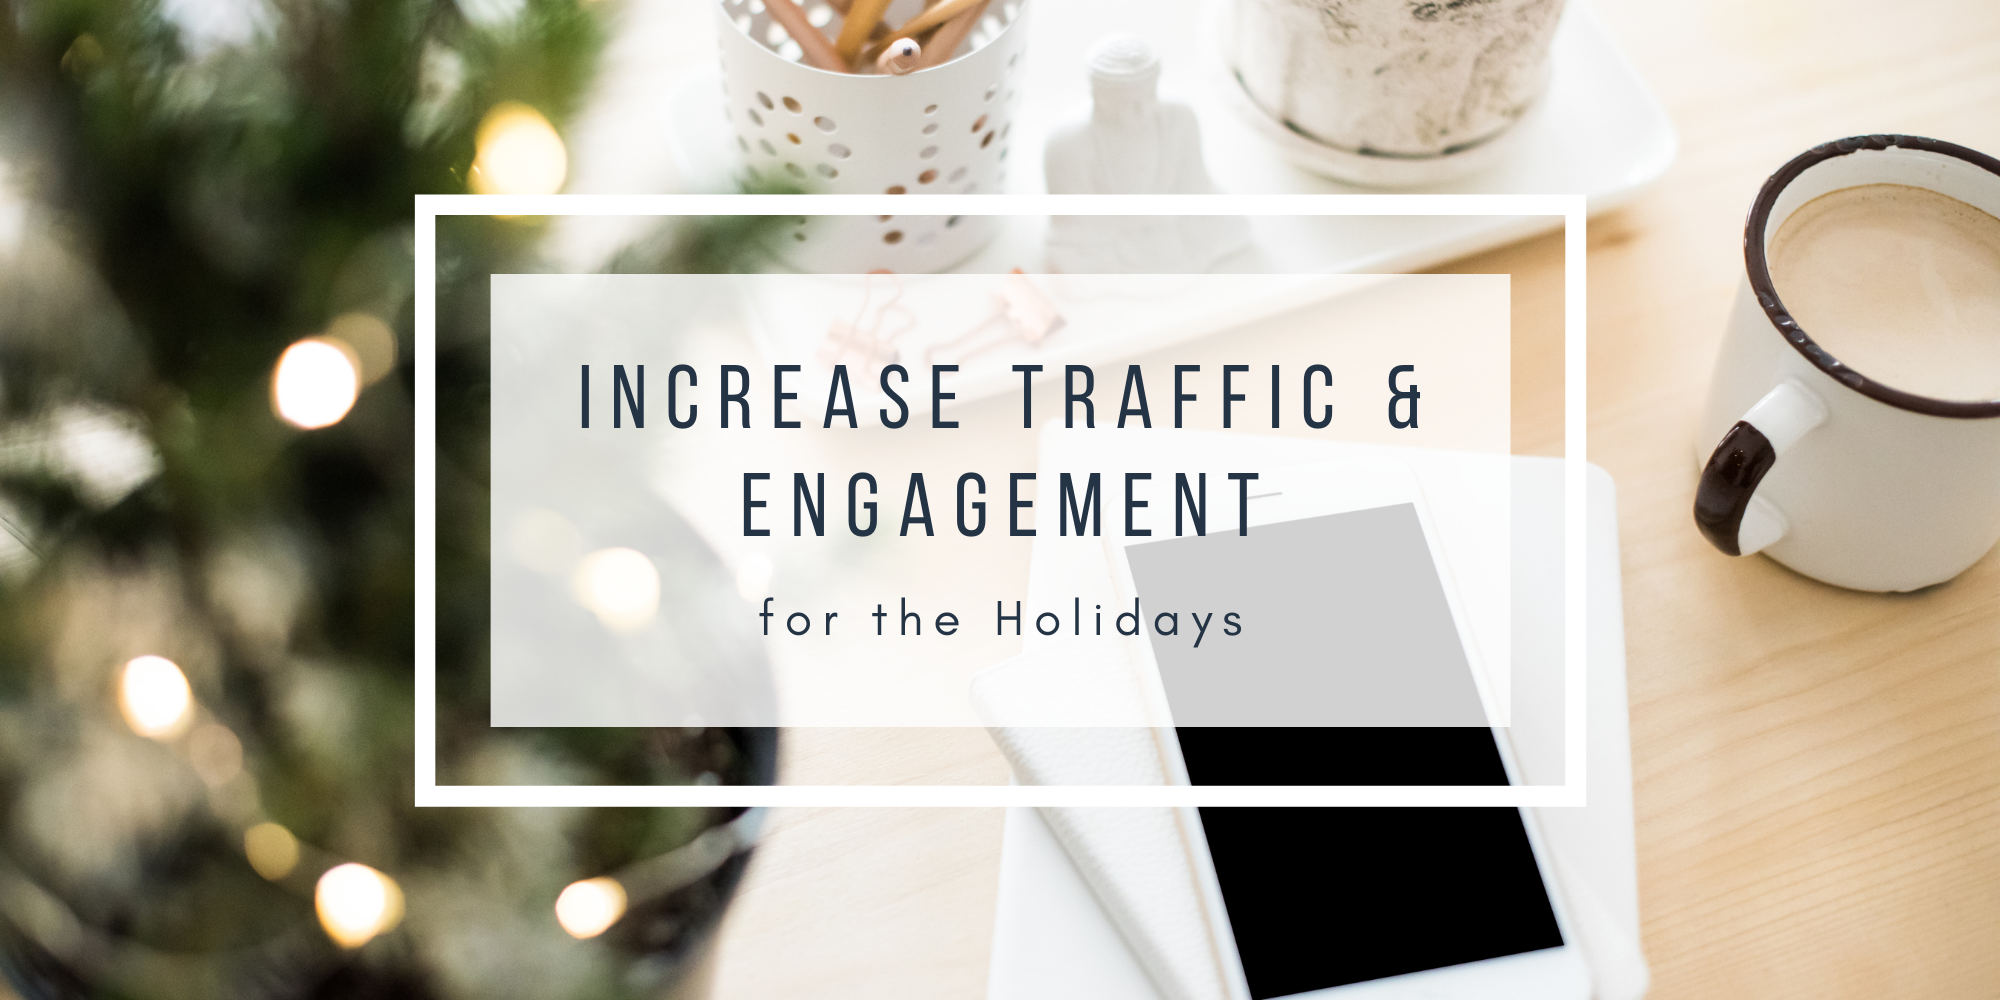 Increase Traffic & Engagement for the Holidays